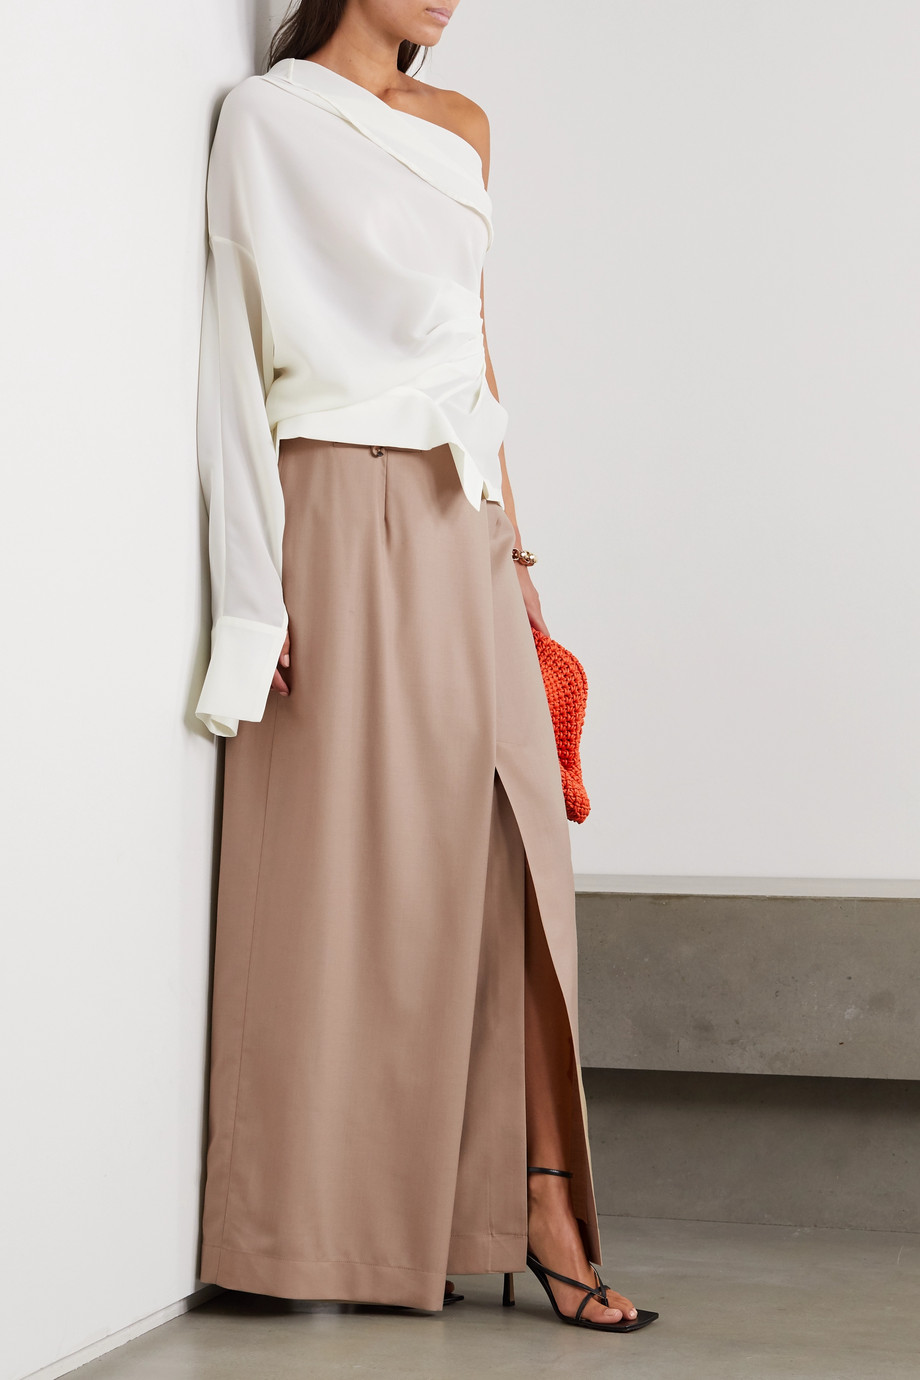 A.W.A.K.E. MODE Draped asymmetric wool maxi skirt